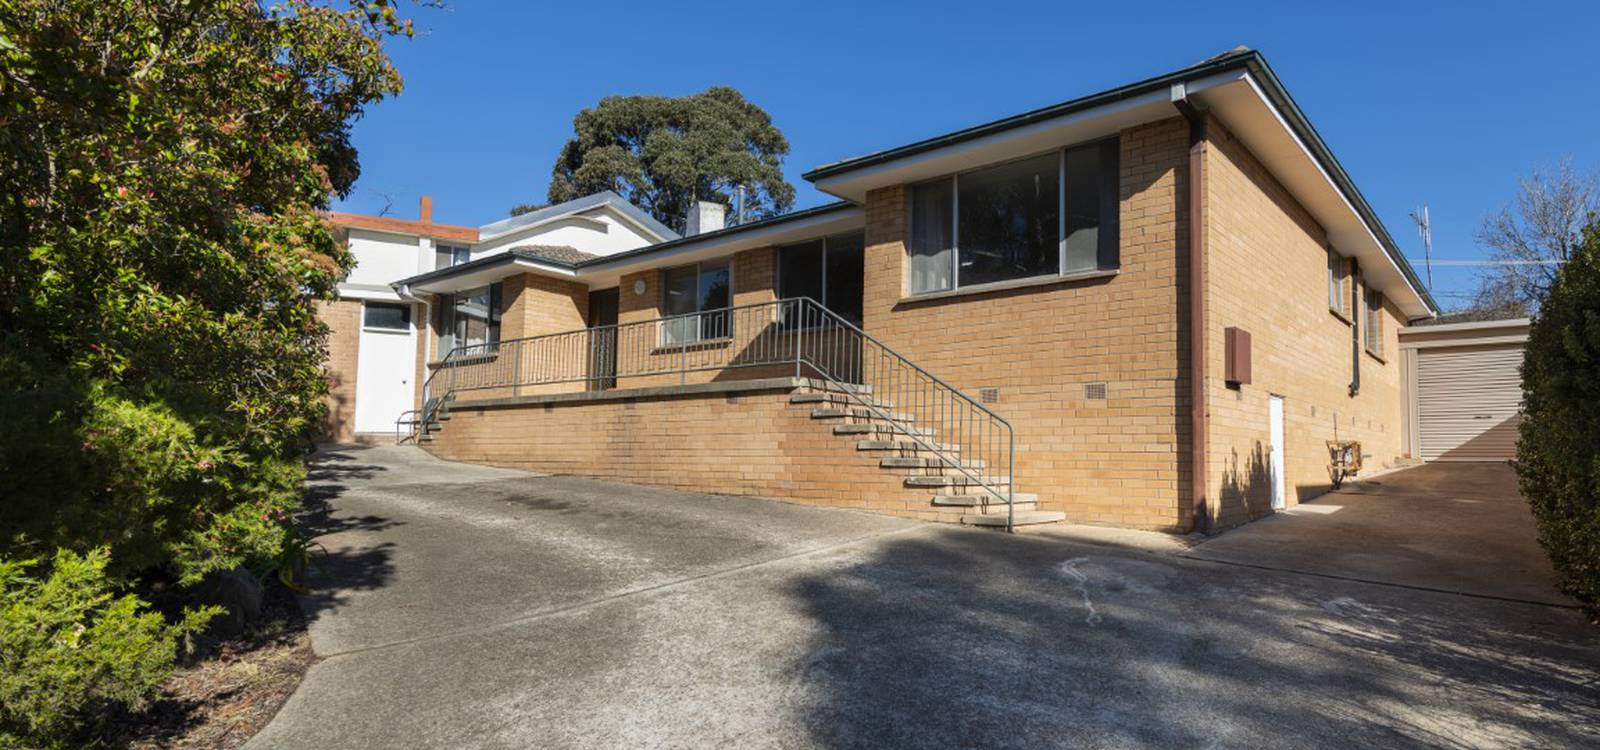 8 Ardlethan Street FISHER, ACT 2611 - photo 1